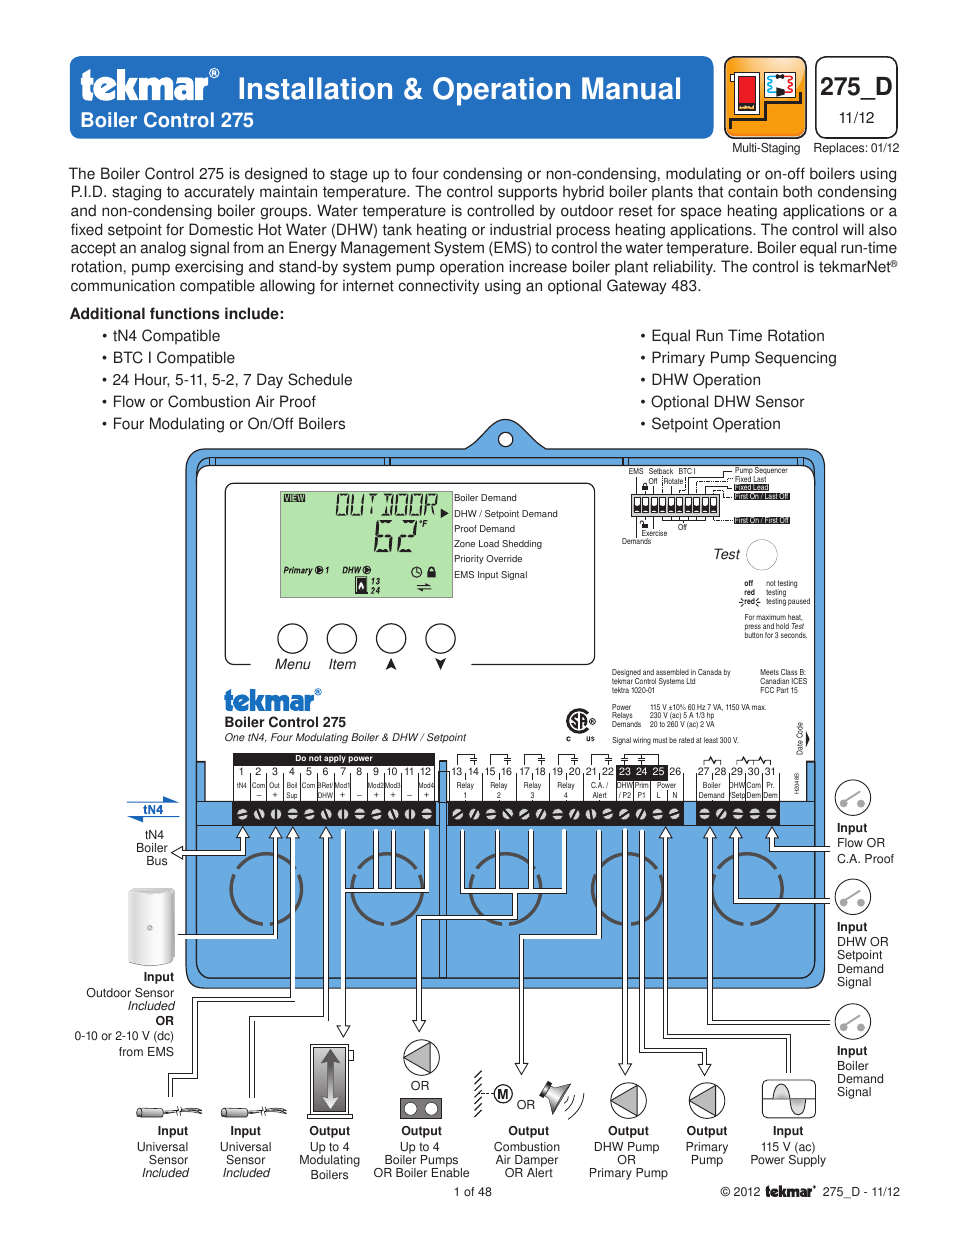 Taco 502 4 Switching Relay Wiring Guide And Troubleshooting Of Diagram Images Gallery